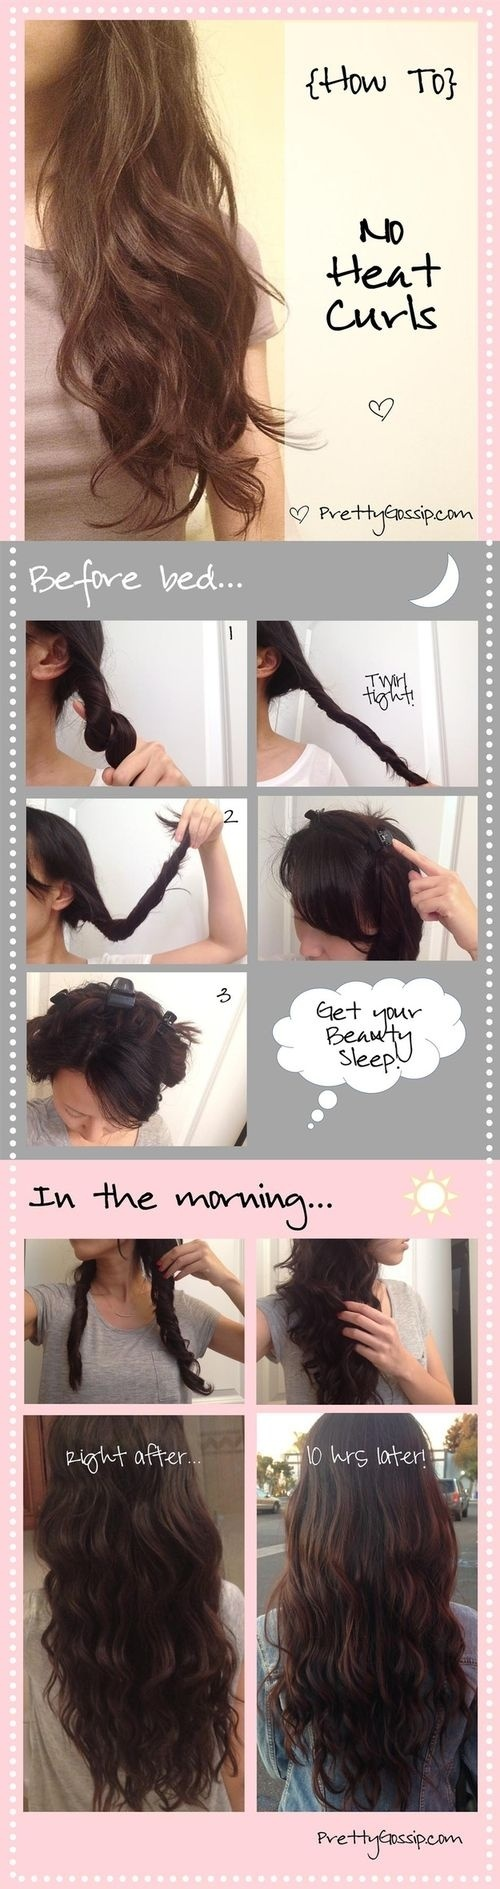 Diy No Heat Curls 15 Tutorials For Curl Hair Without Heat Styles Weekly